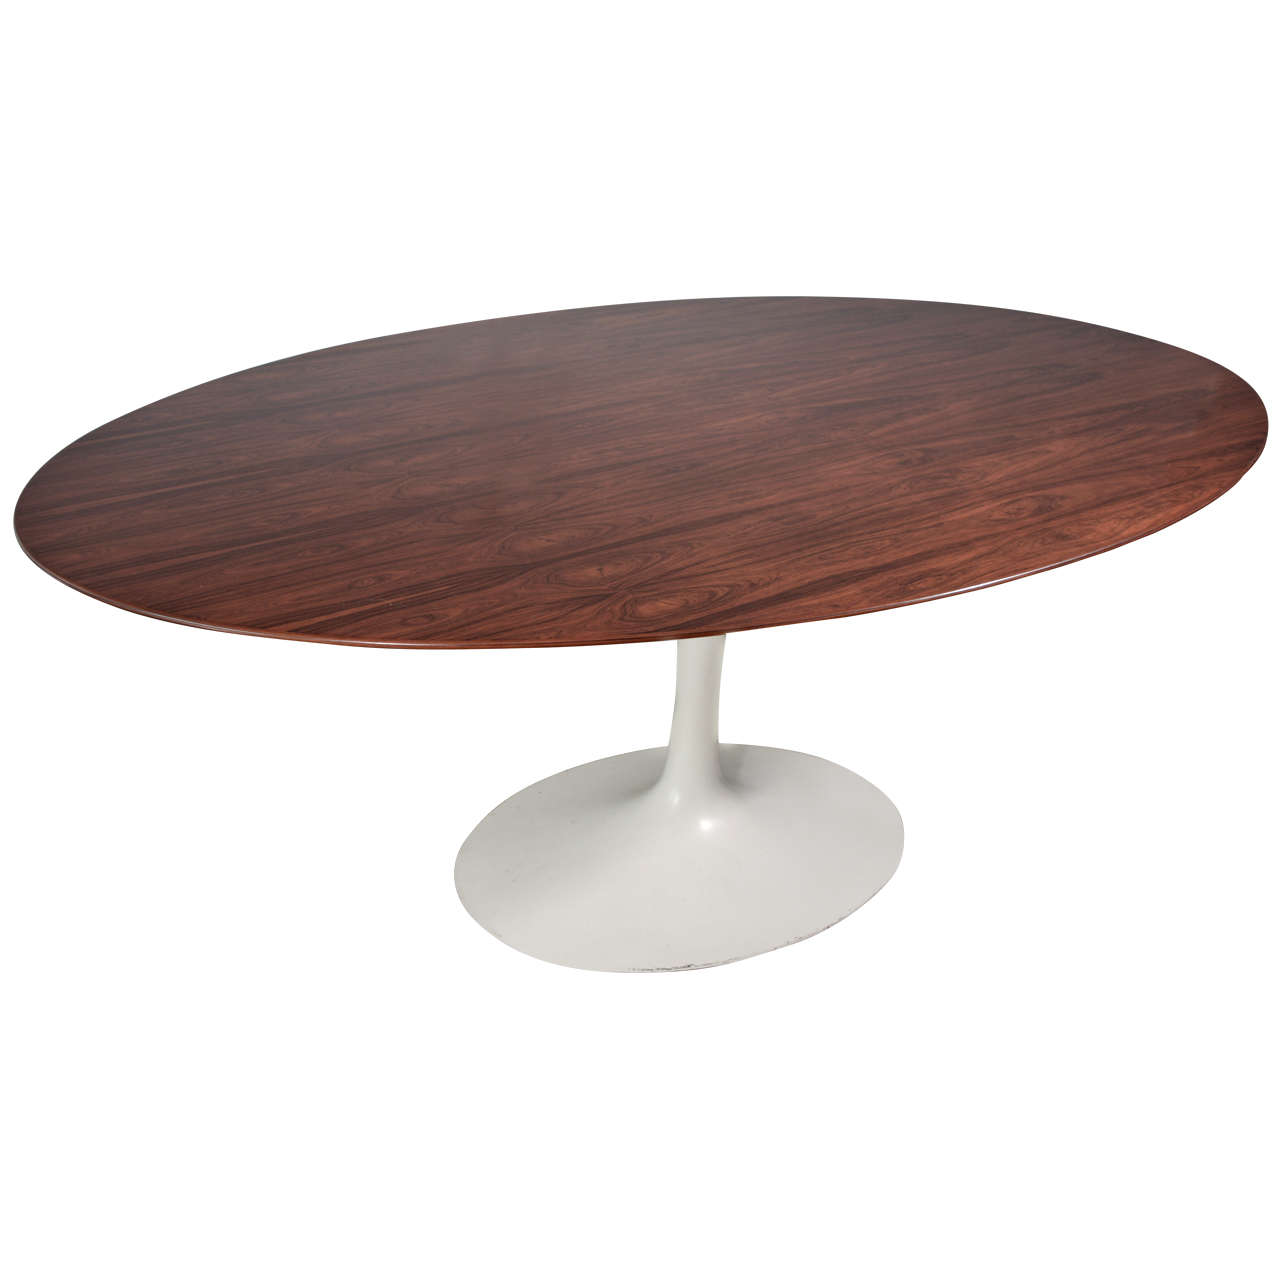 Eero Saarinen 78 Tulip Dining Table With Brazilian